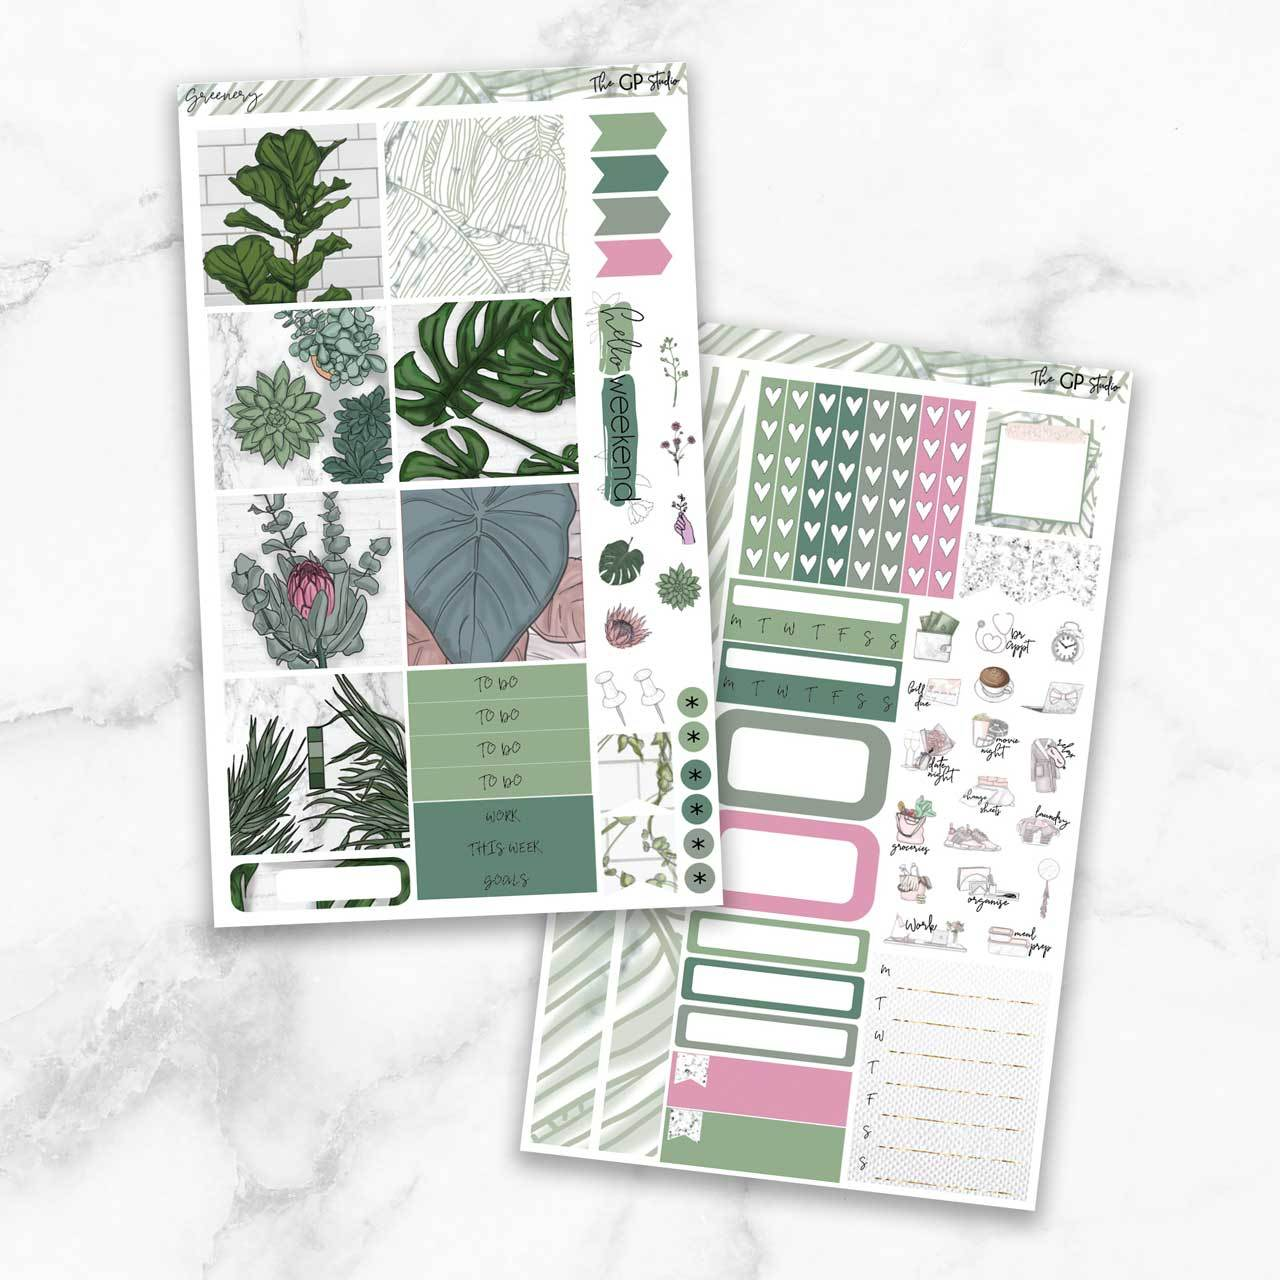 GREENERY Mini Size Planner Sticker Kit-The GP Studio